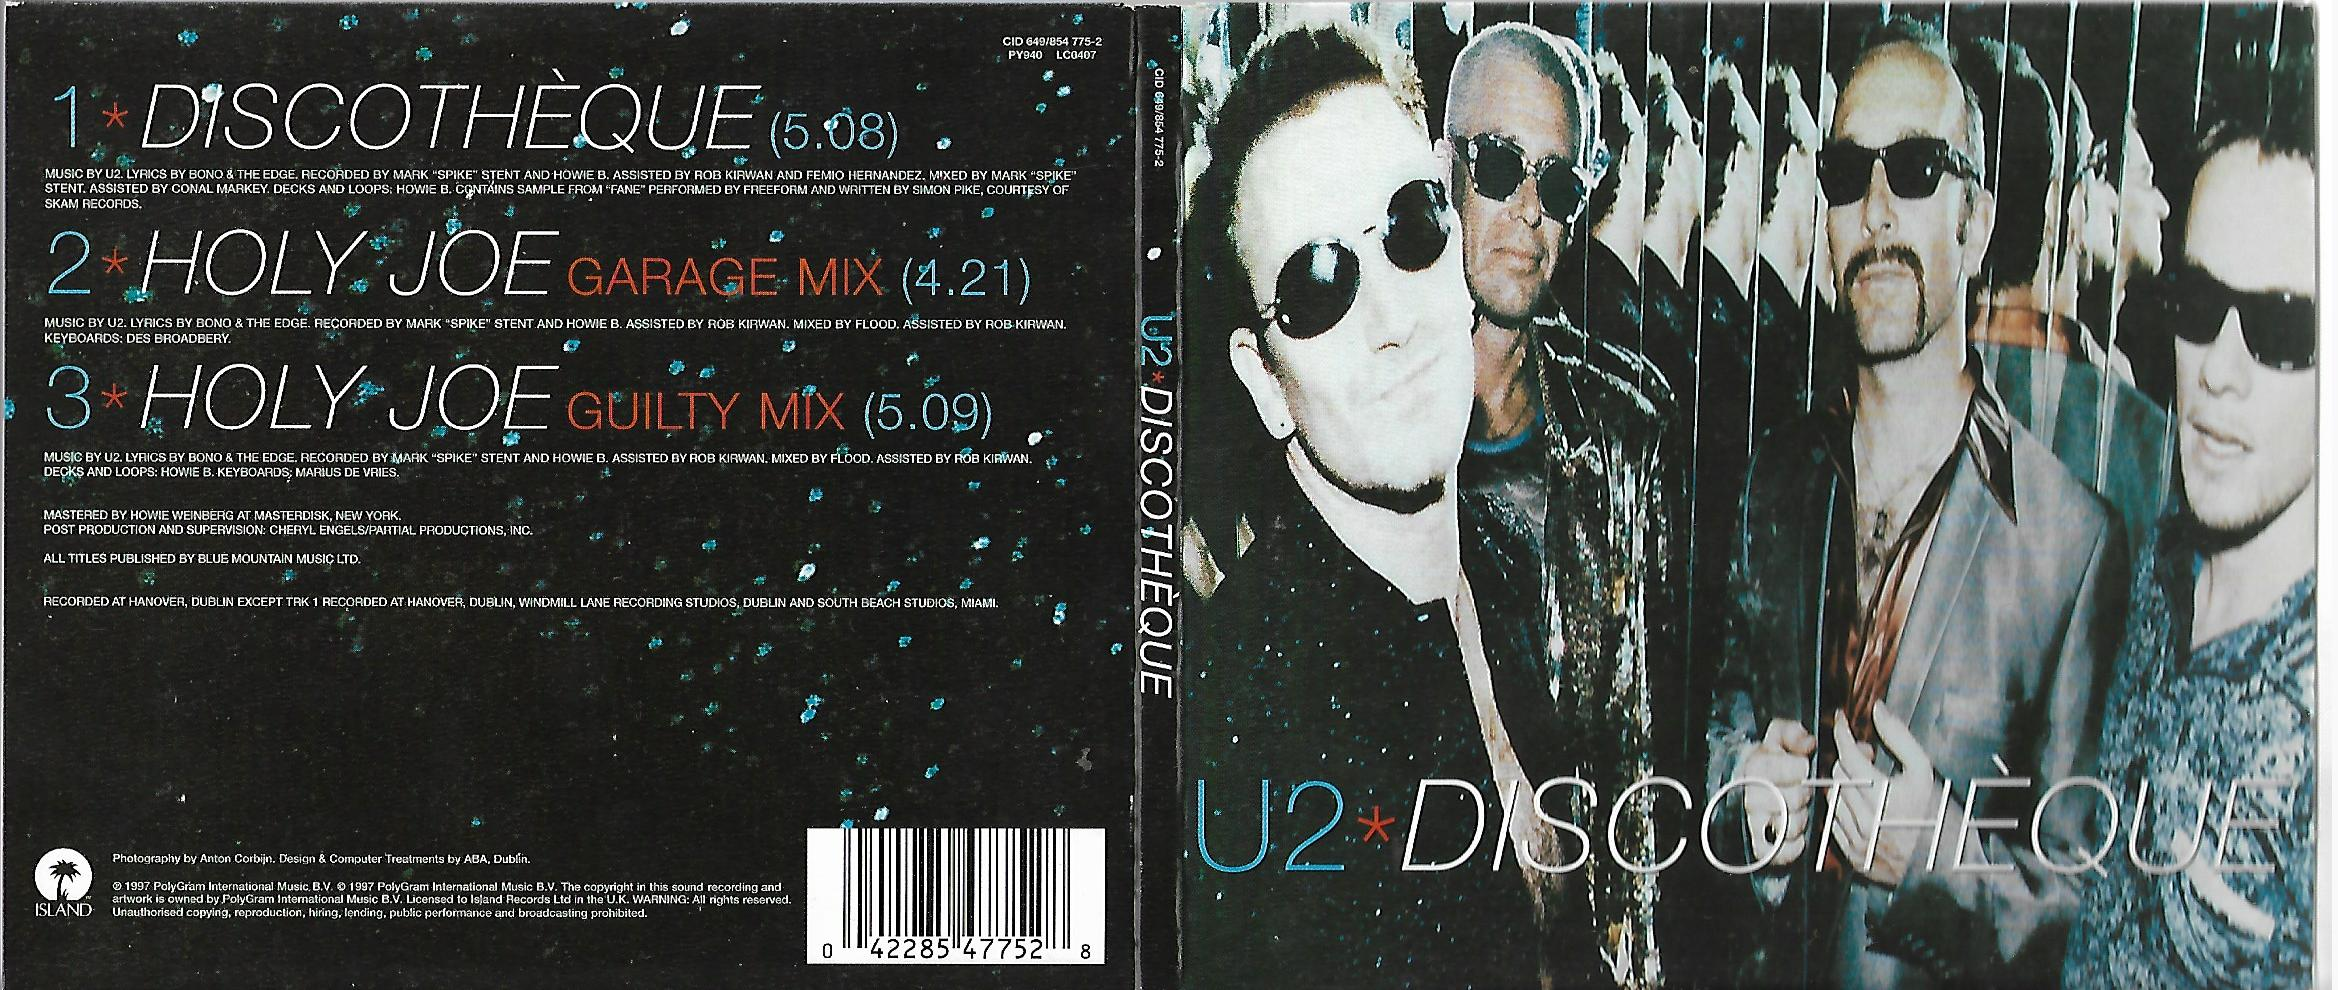 U2 - Discotheque Dm Deep Club Mix/howie B Hairy B Mix/hexidecimal Mix/dm Tec Radio Mix